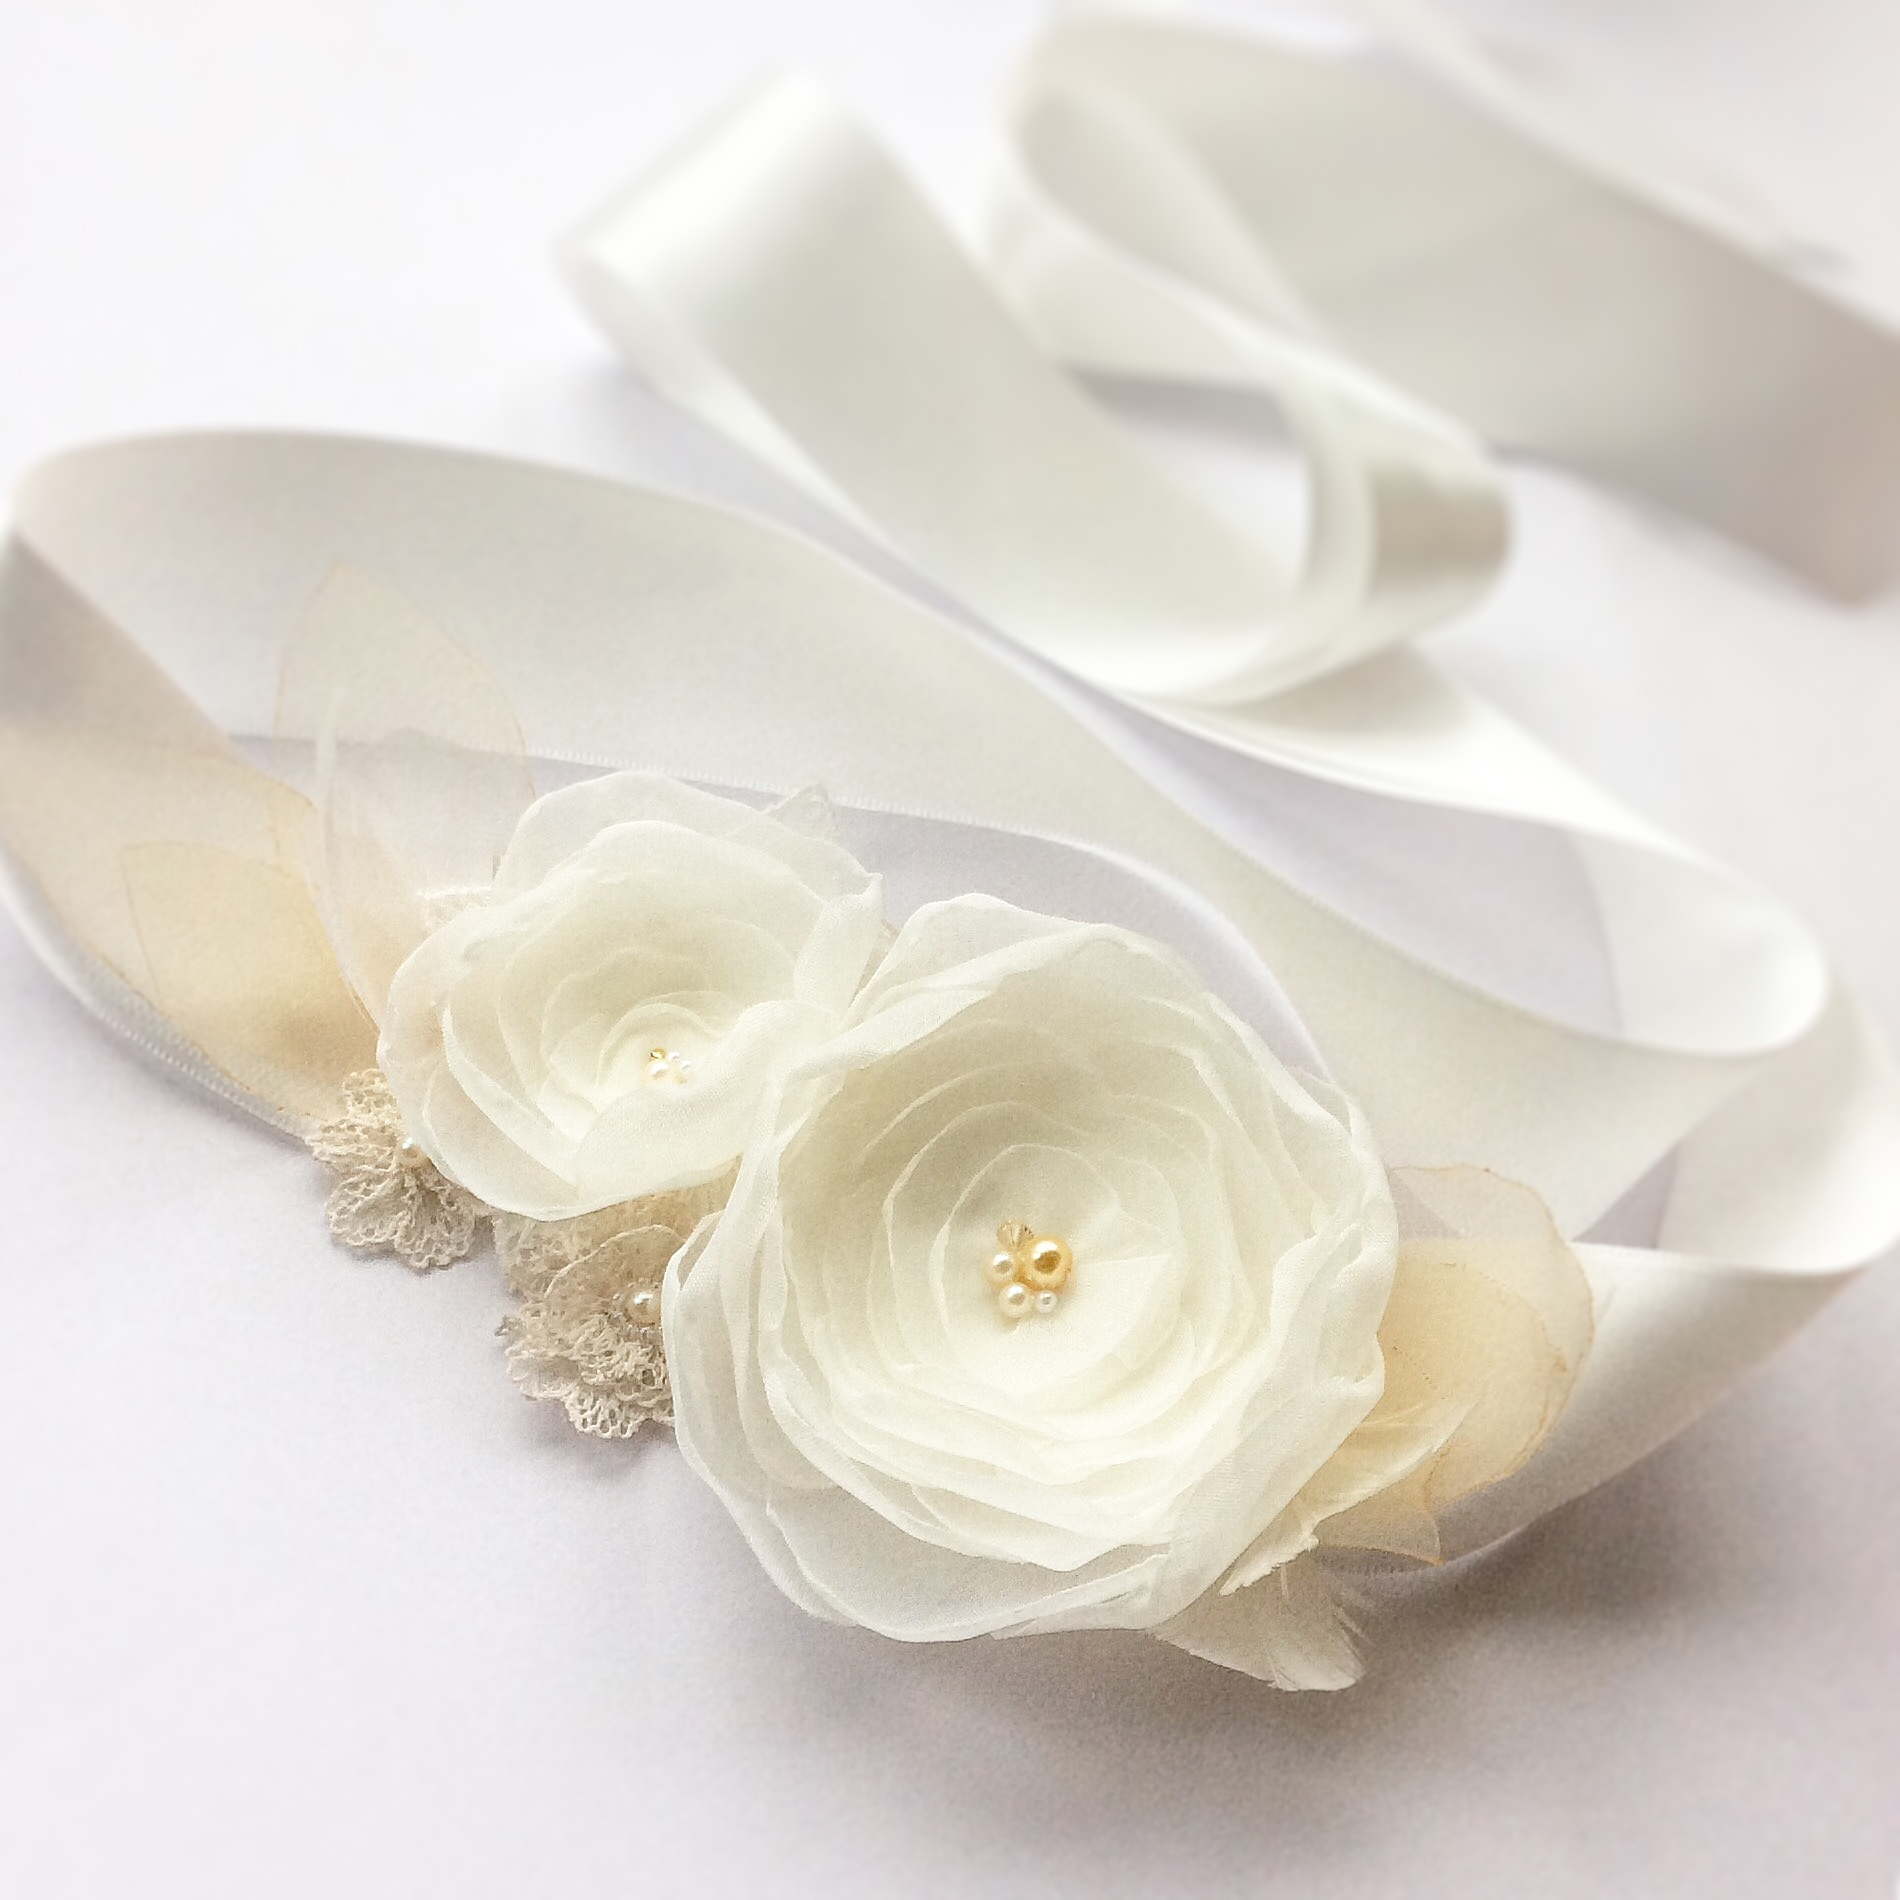 Bespoke wedding sash